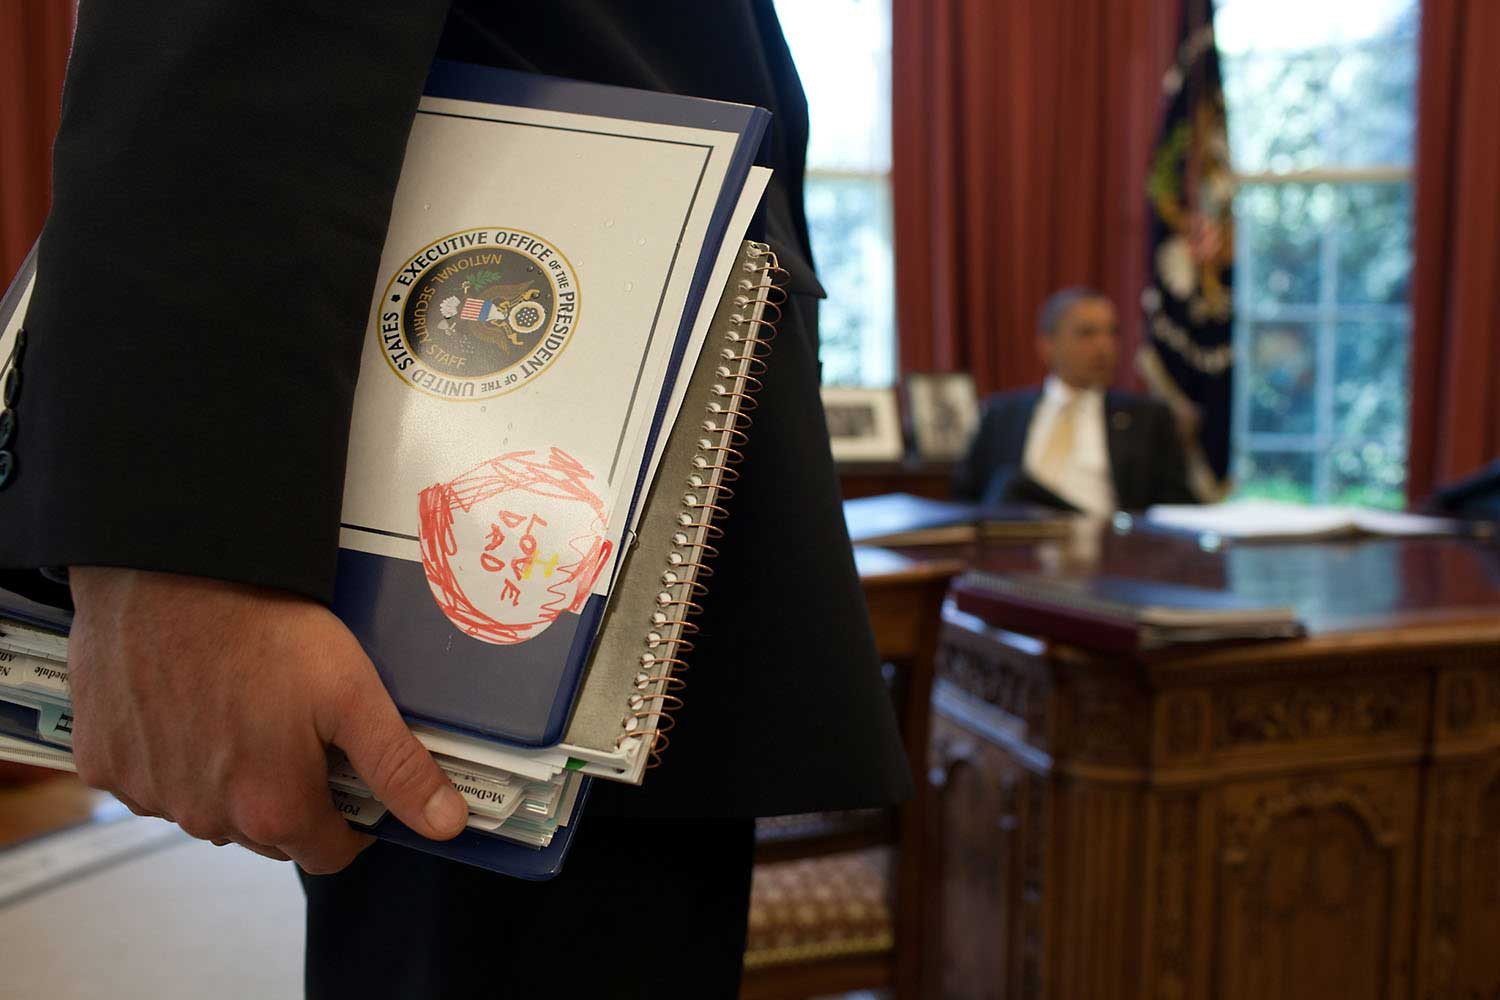 Denis McDonough, Deputy National Security Advisor, holds a binder with a note from his son as he and others brief President Obama in the Oval Office, March 29, 2012.